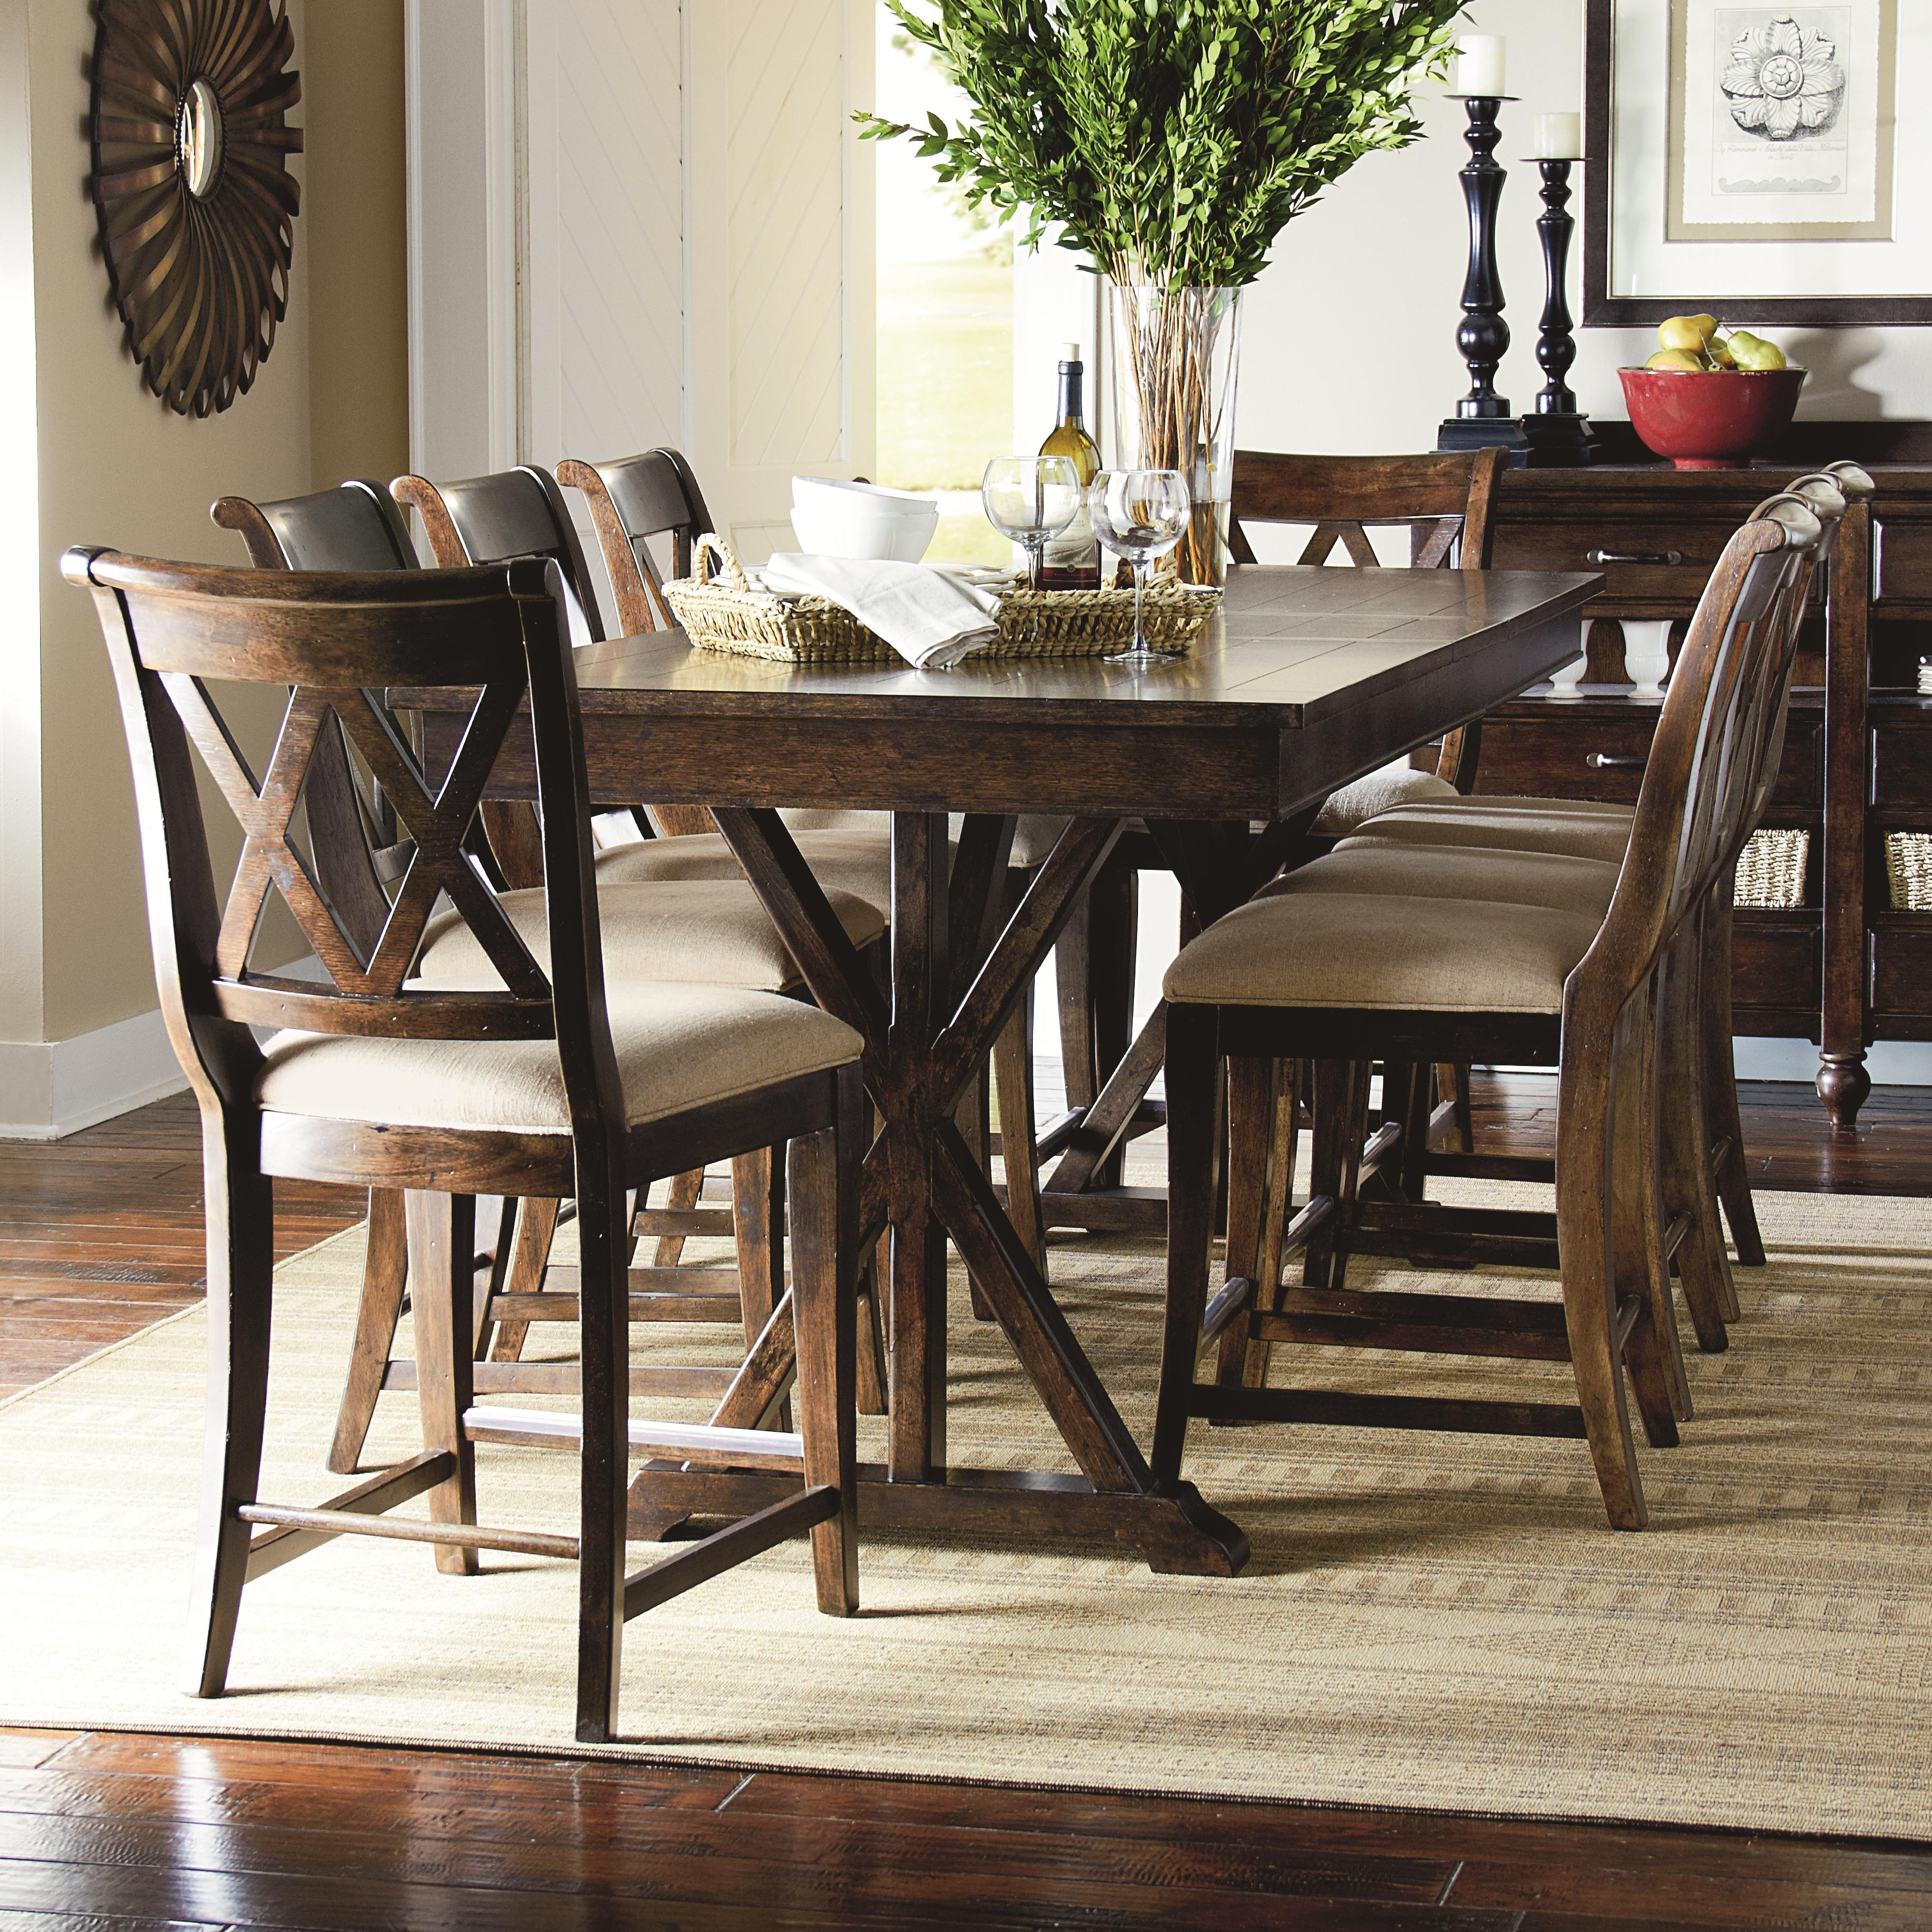 9 piece pub dining set 9 piece pub dining set with x shaped details by legacy classic      rh   wolffurniture com